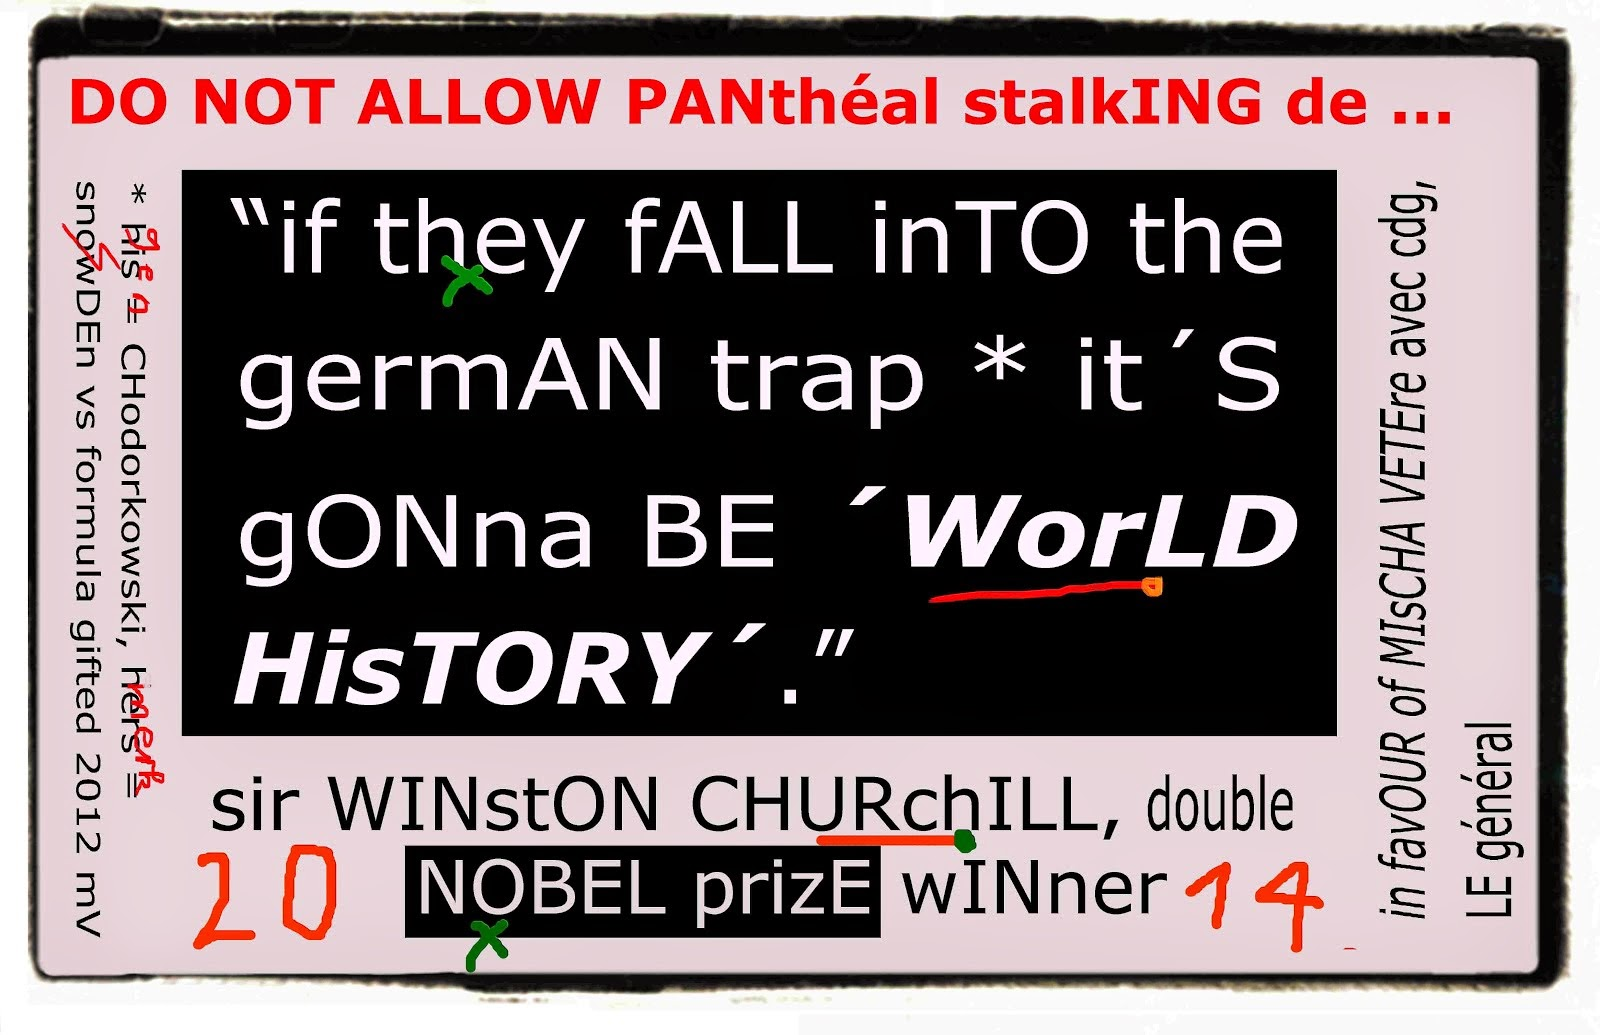 sir winston churchill to nobelprize committee through mischa vetere against snwoDEn genscher lie